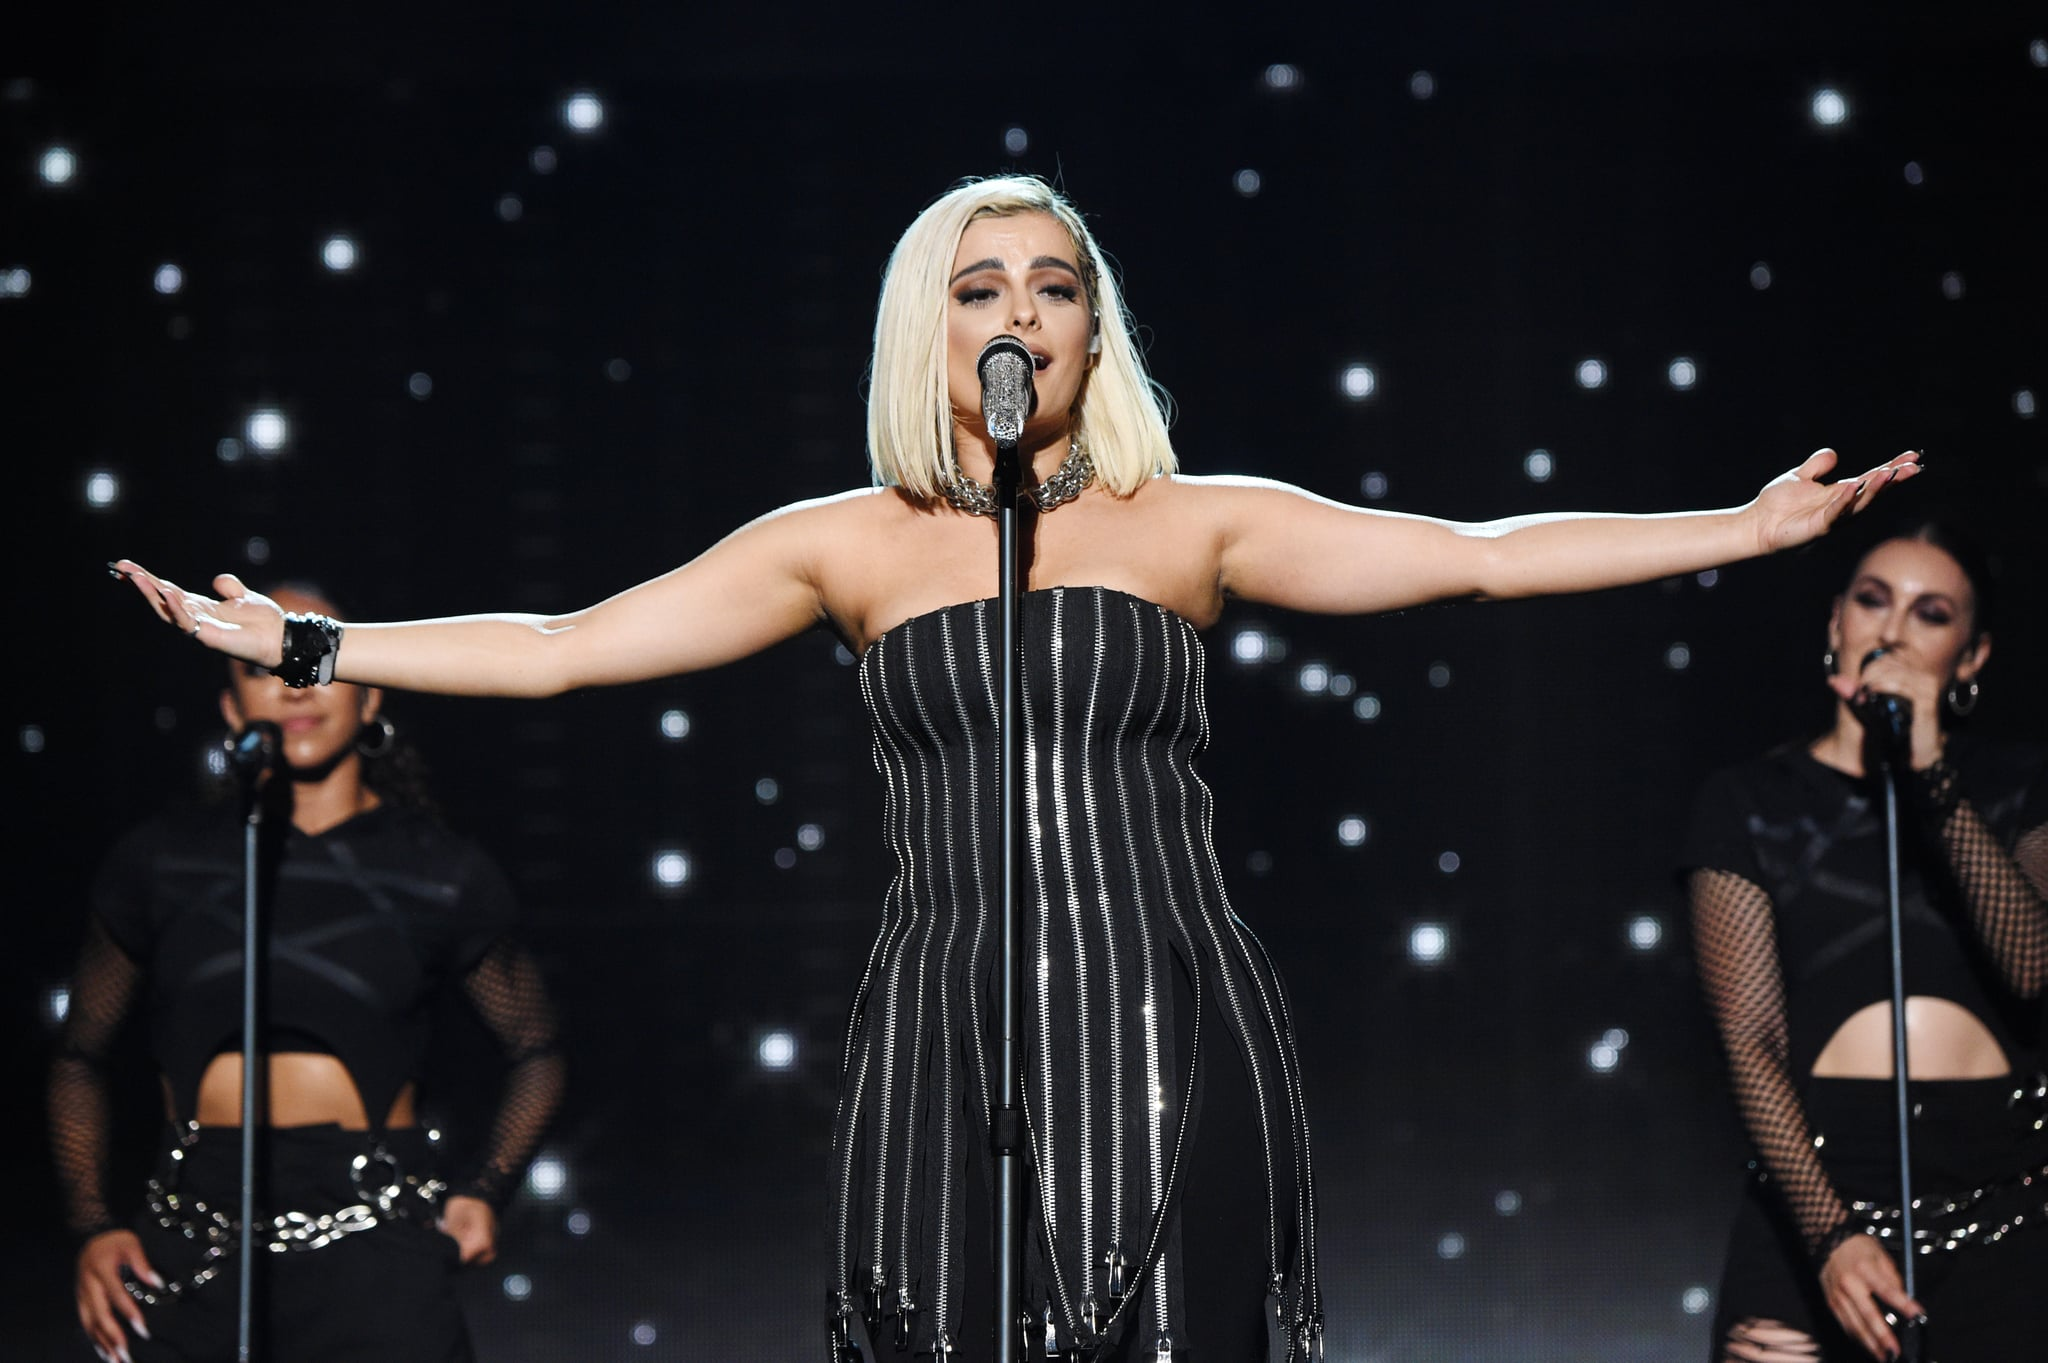 NEW YORK, NEW YORK - AUGUST 30: Bebe Rexha performs onstage during Jonas Brothers: